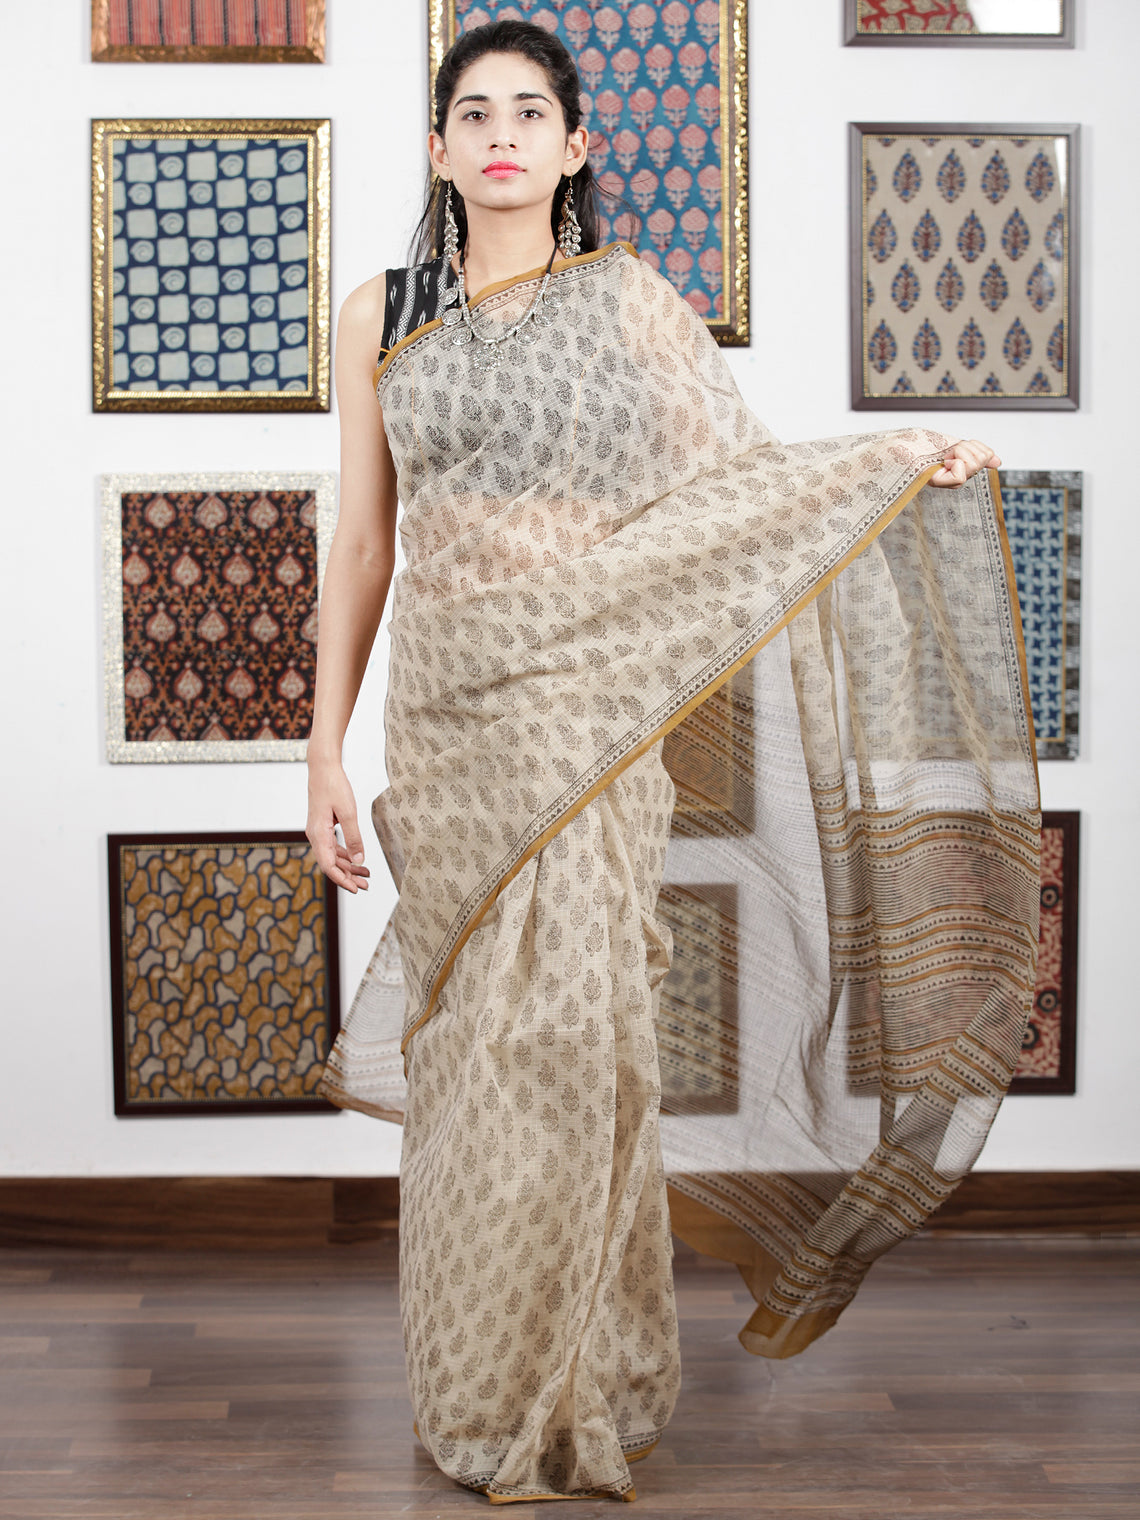 Beige Brown Black Hand Block Printed Kota Doria Saree in Natural Colors - S031703104